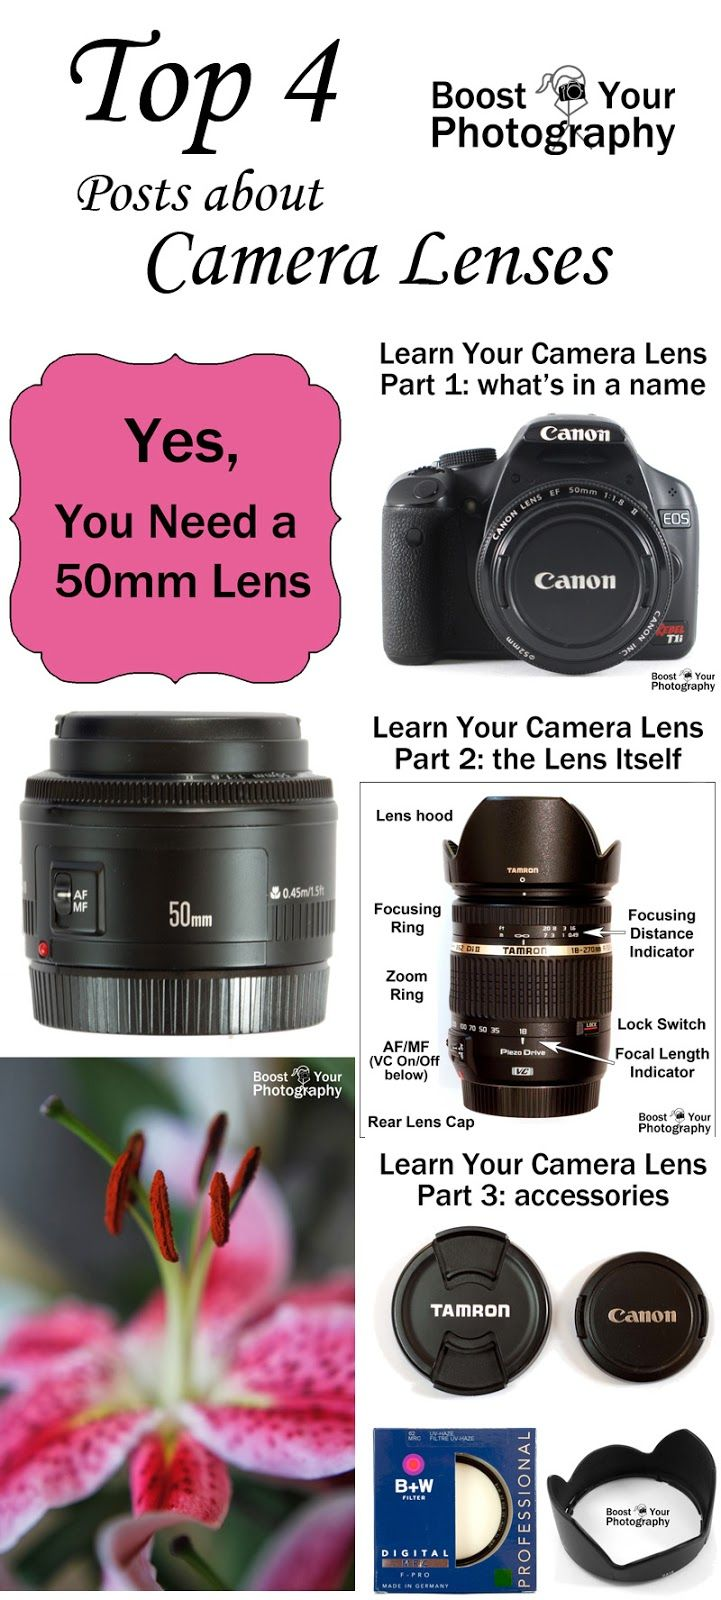 Top 4 Posts about Camera Lenses | Boost Your Photography